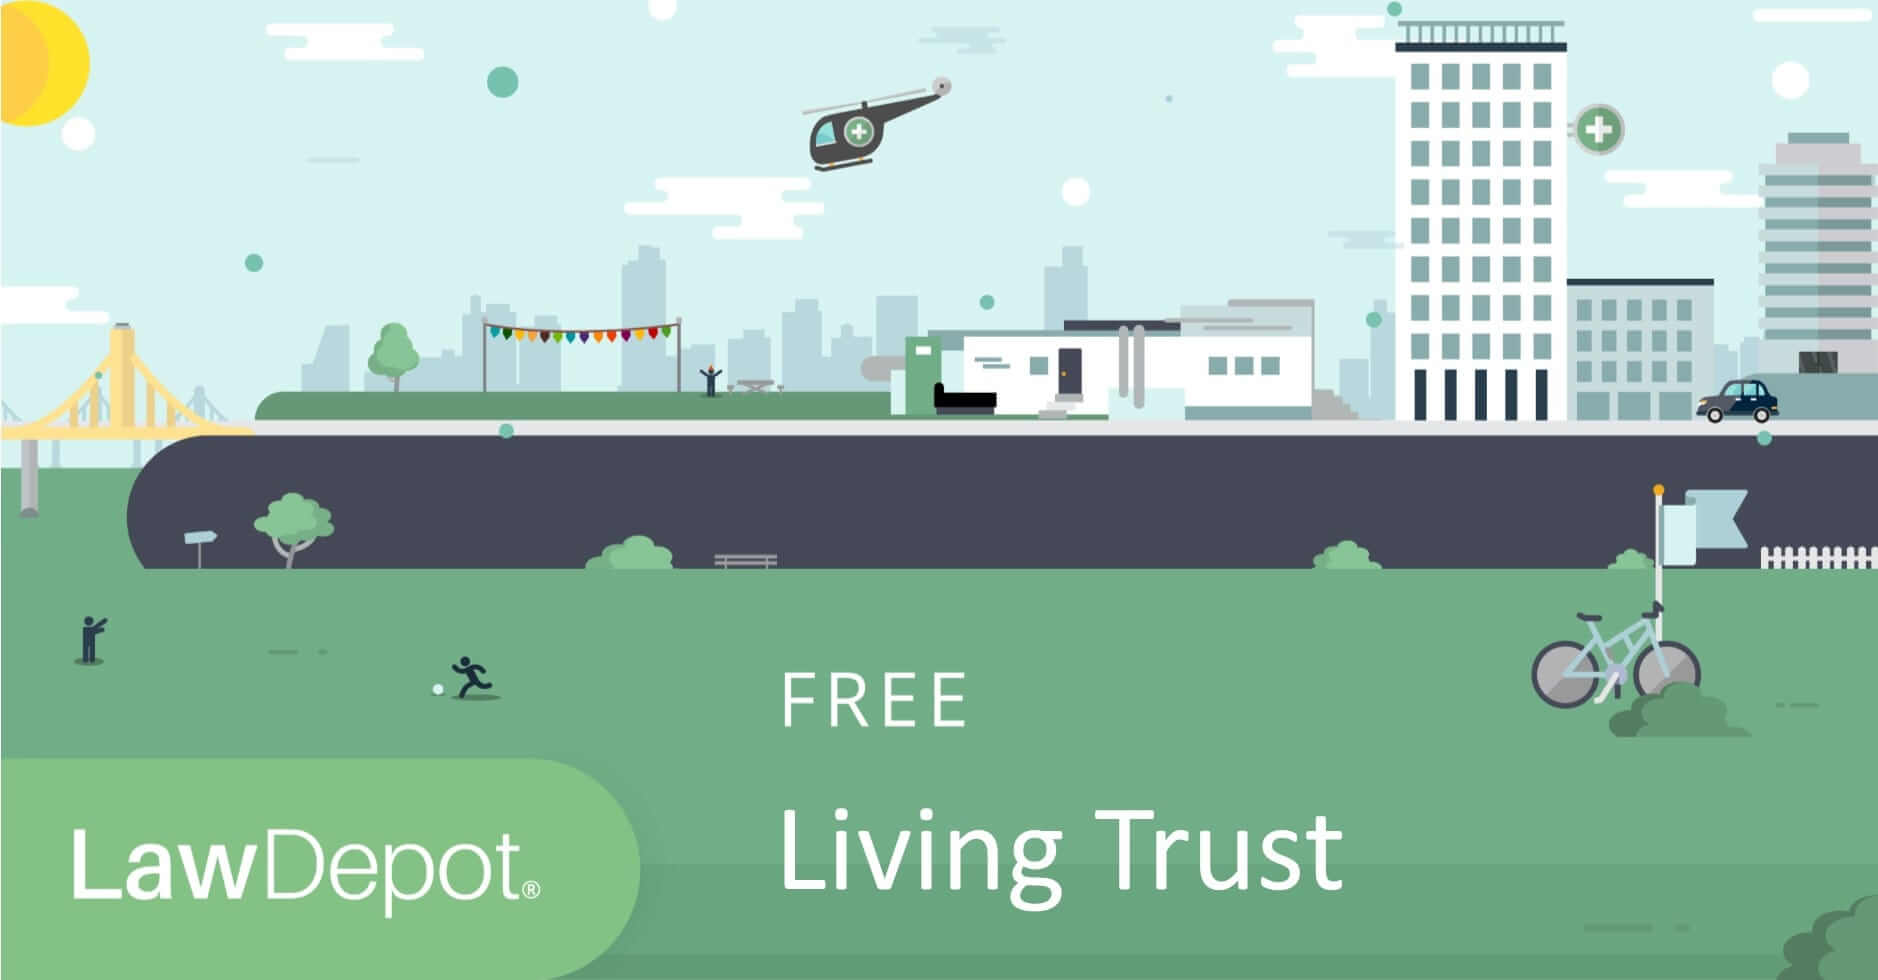 Free Bill Of Sale Template >> Revocable Living Trust | Free Living Trust Forms (US) | LawDepot